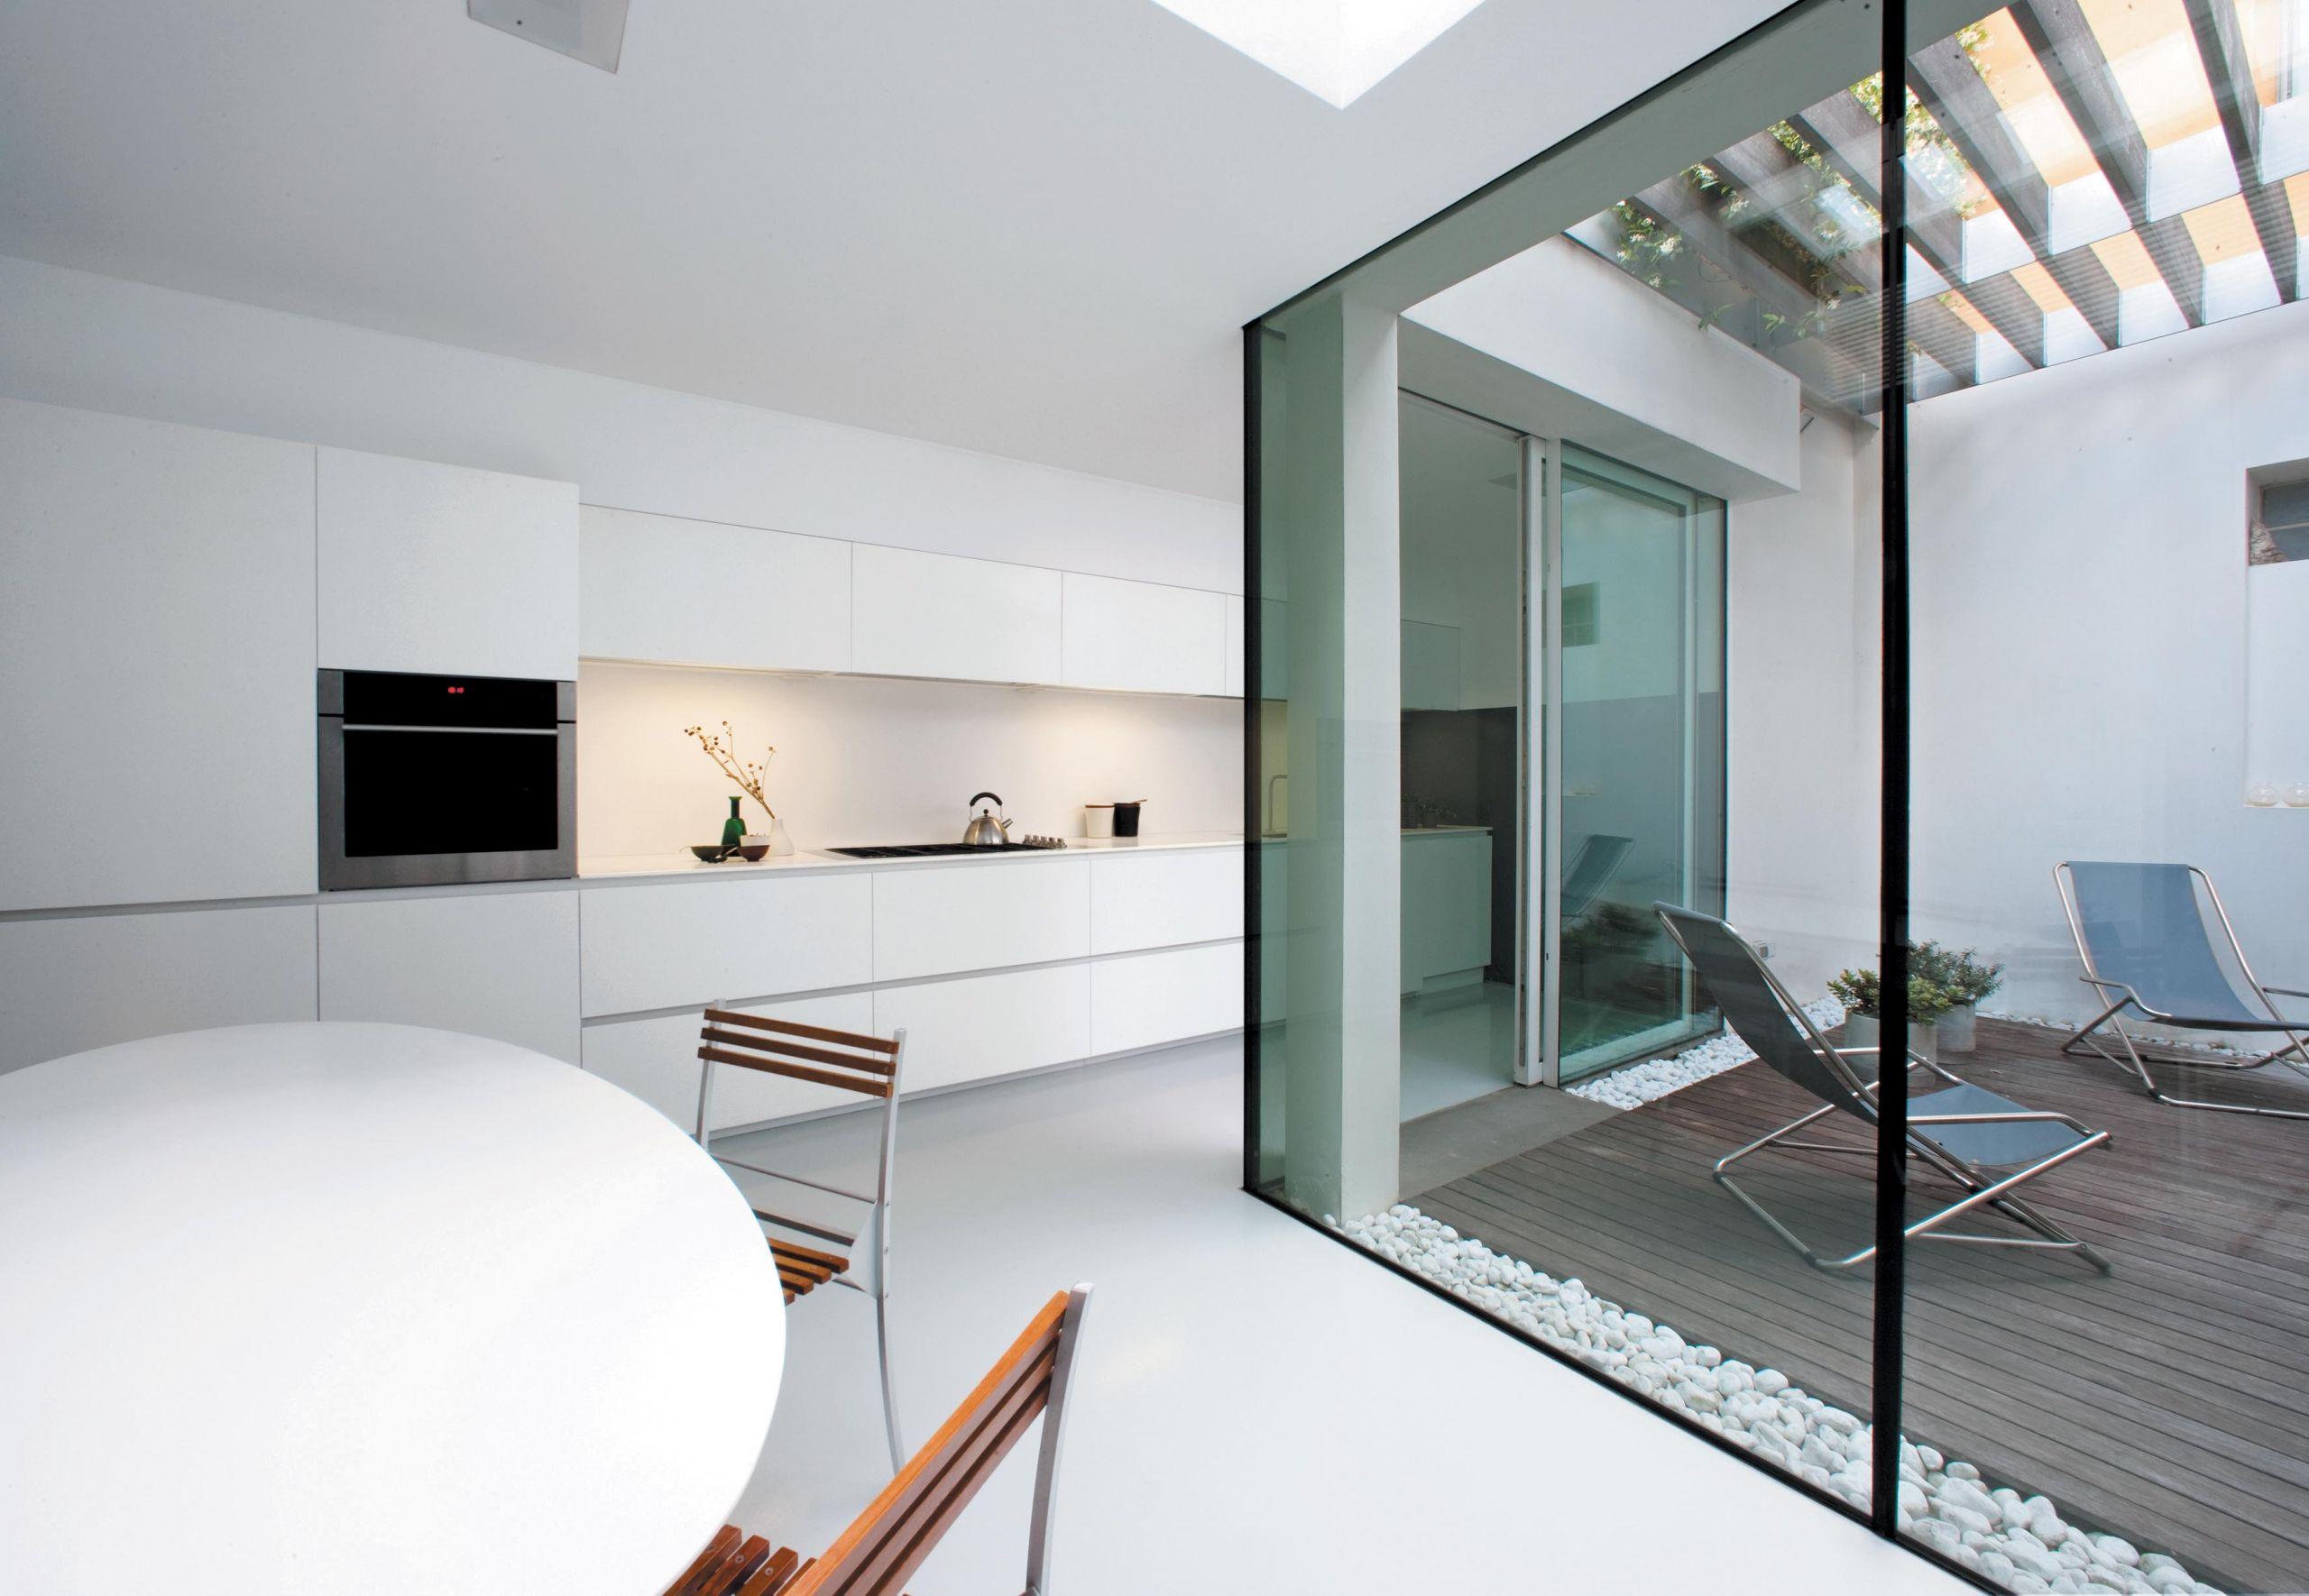 Super sleek lacquered kitchen featuring well-balanced and light-filled design